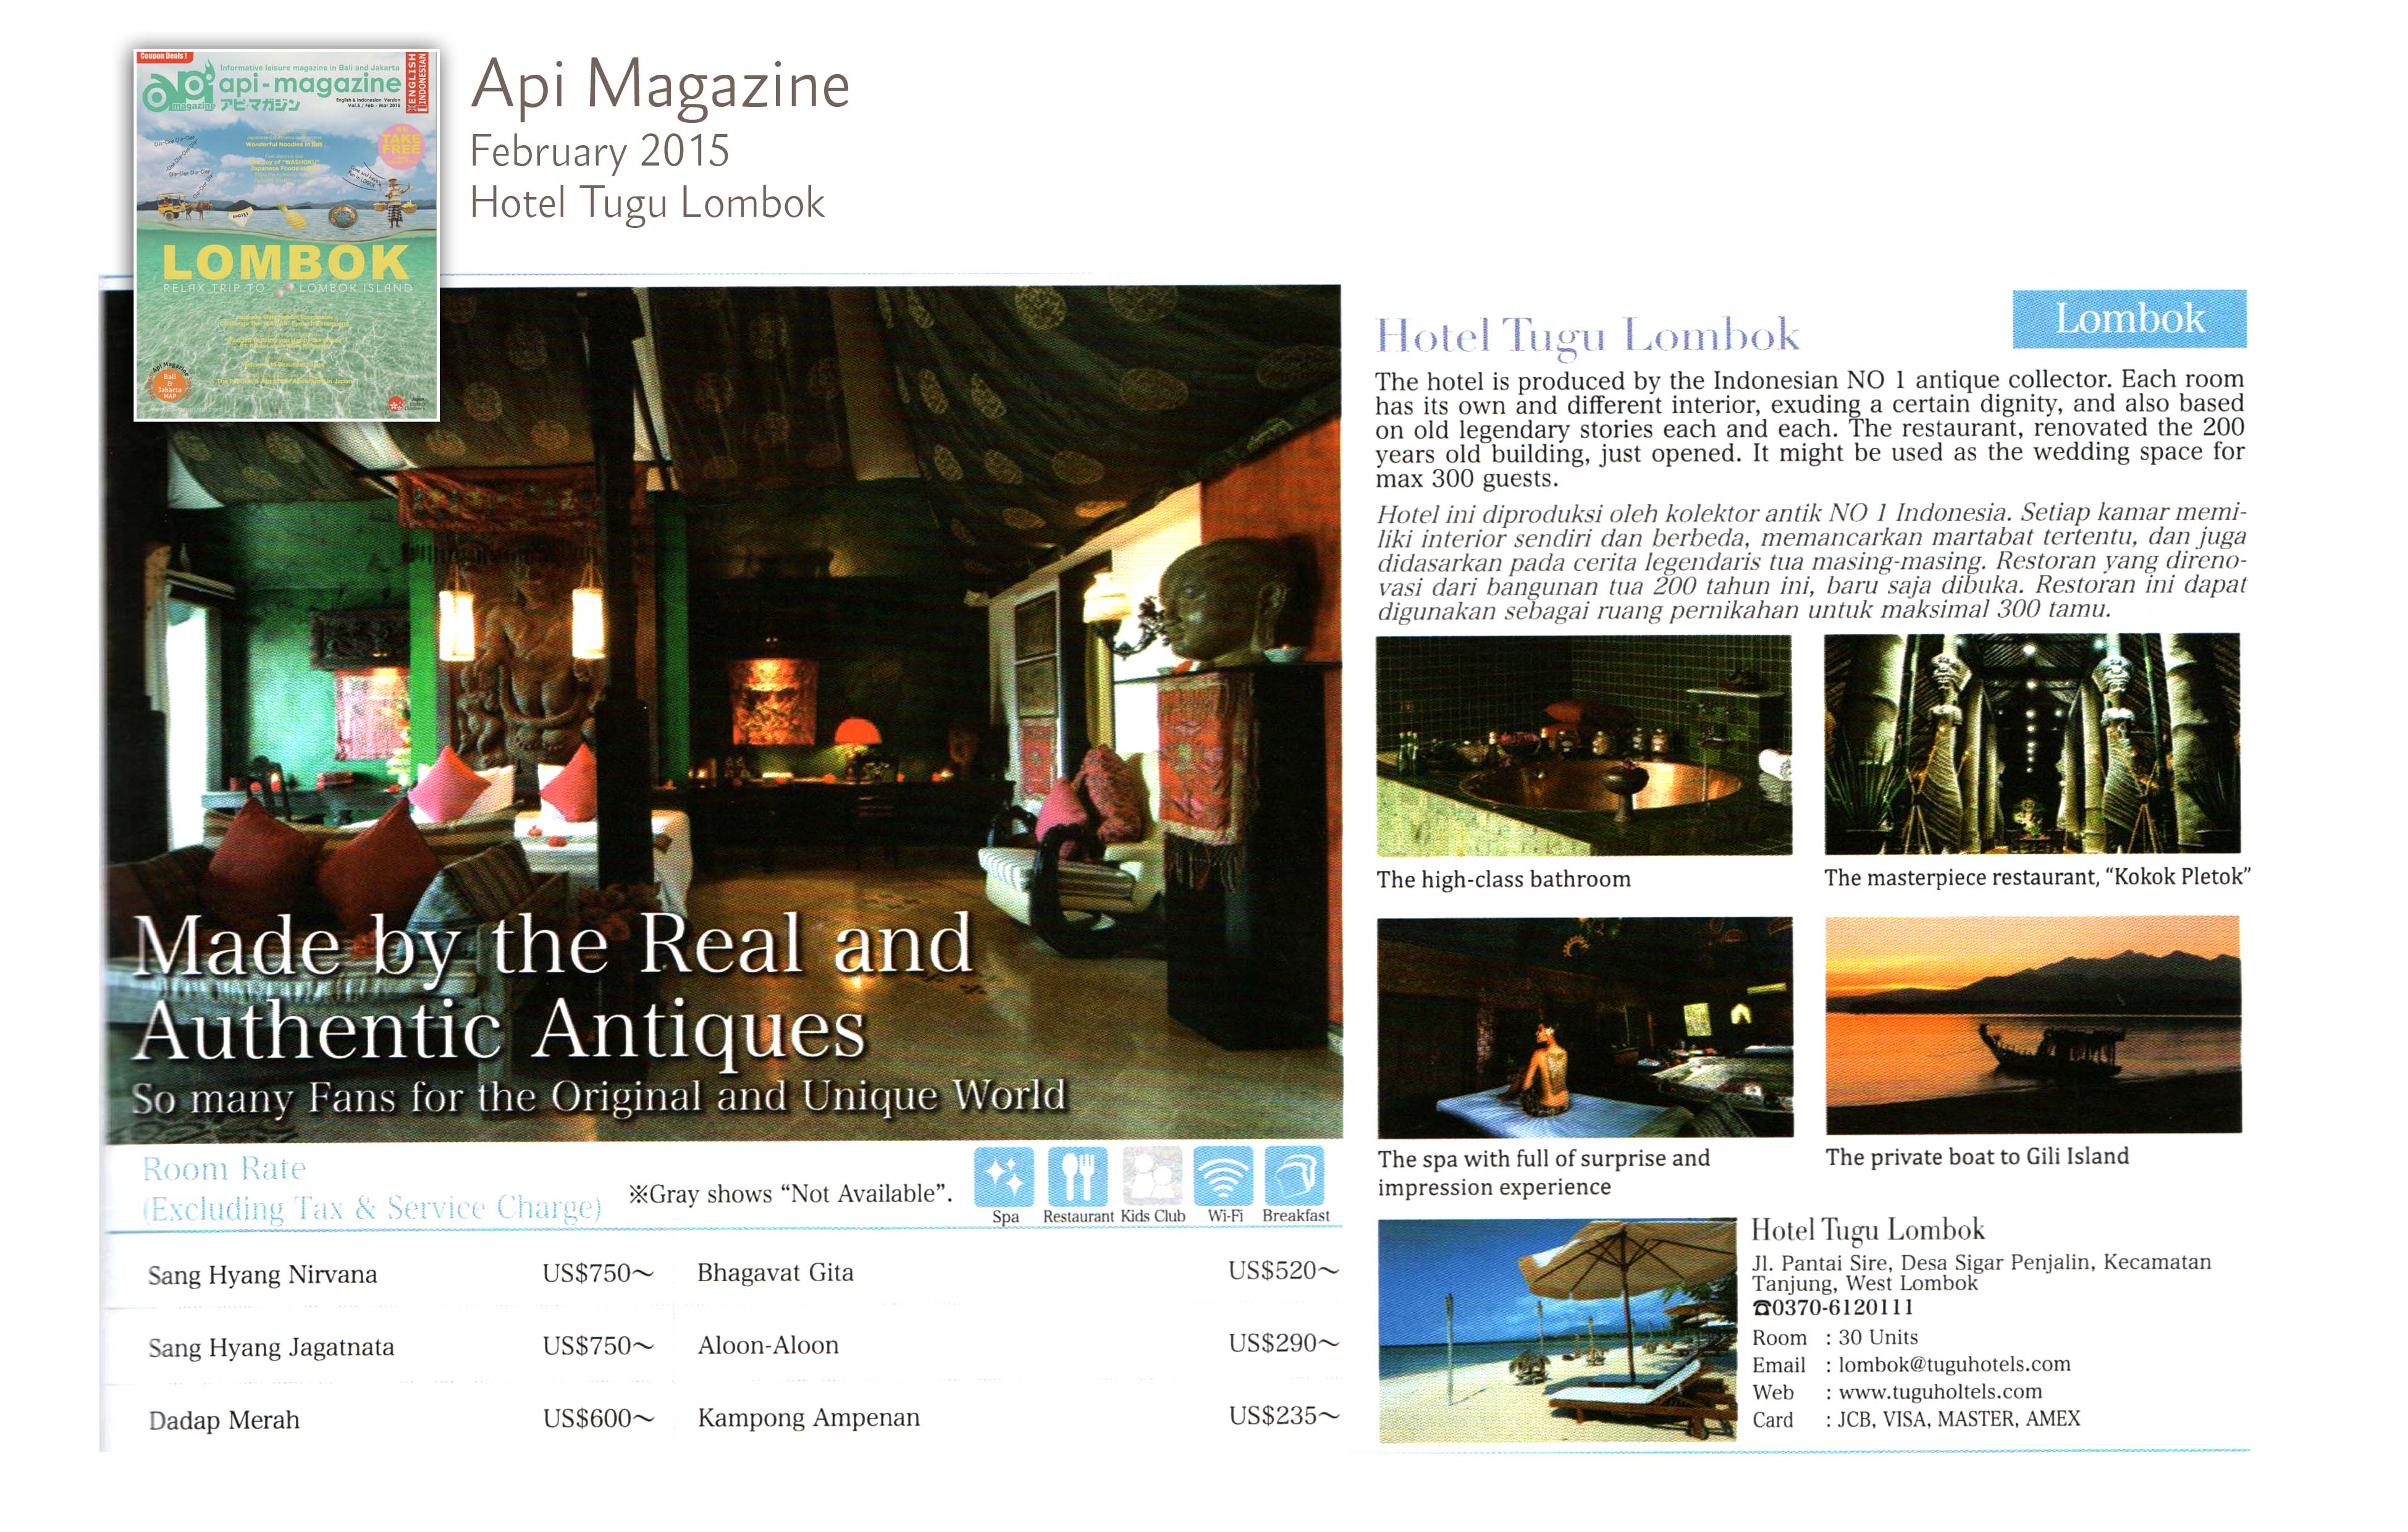 Api magazine F ebruary 2015 Tugu Lombok - made by the real and authentic antiques